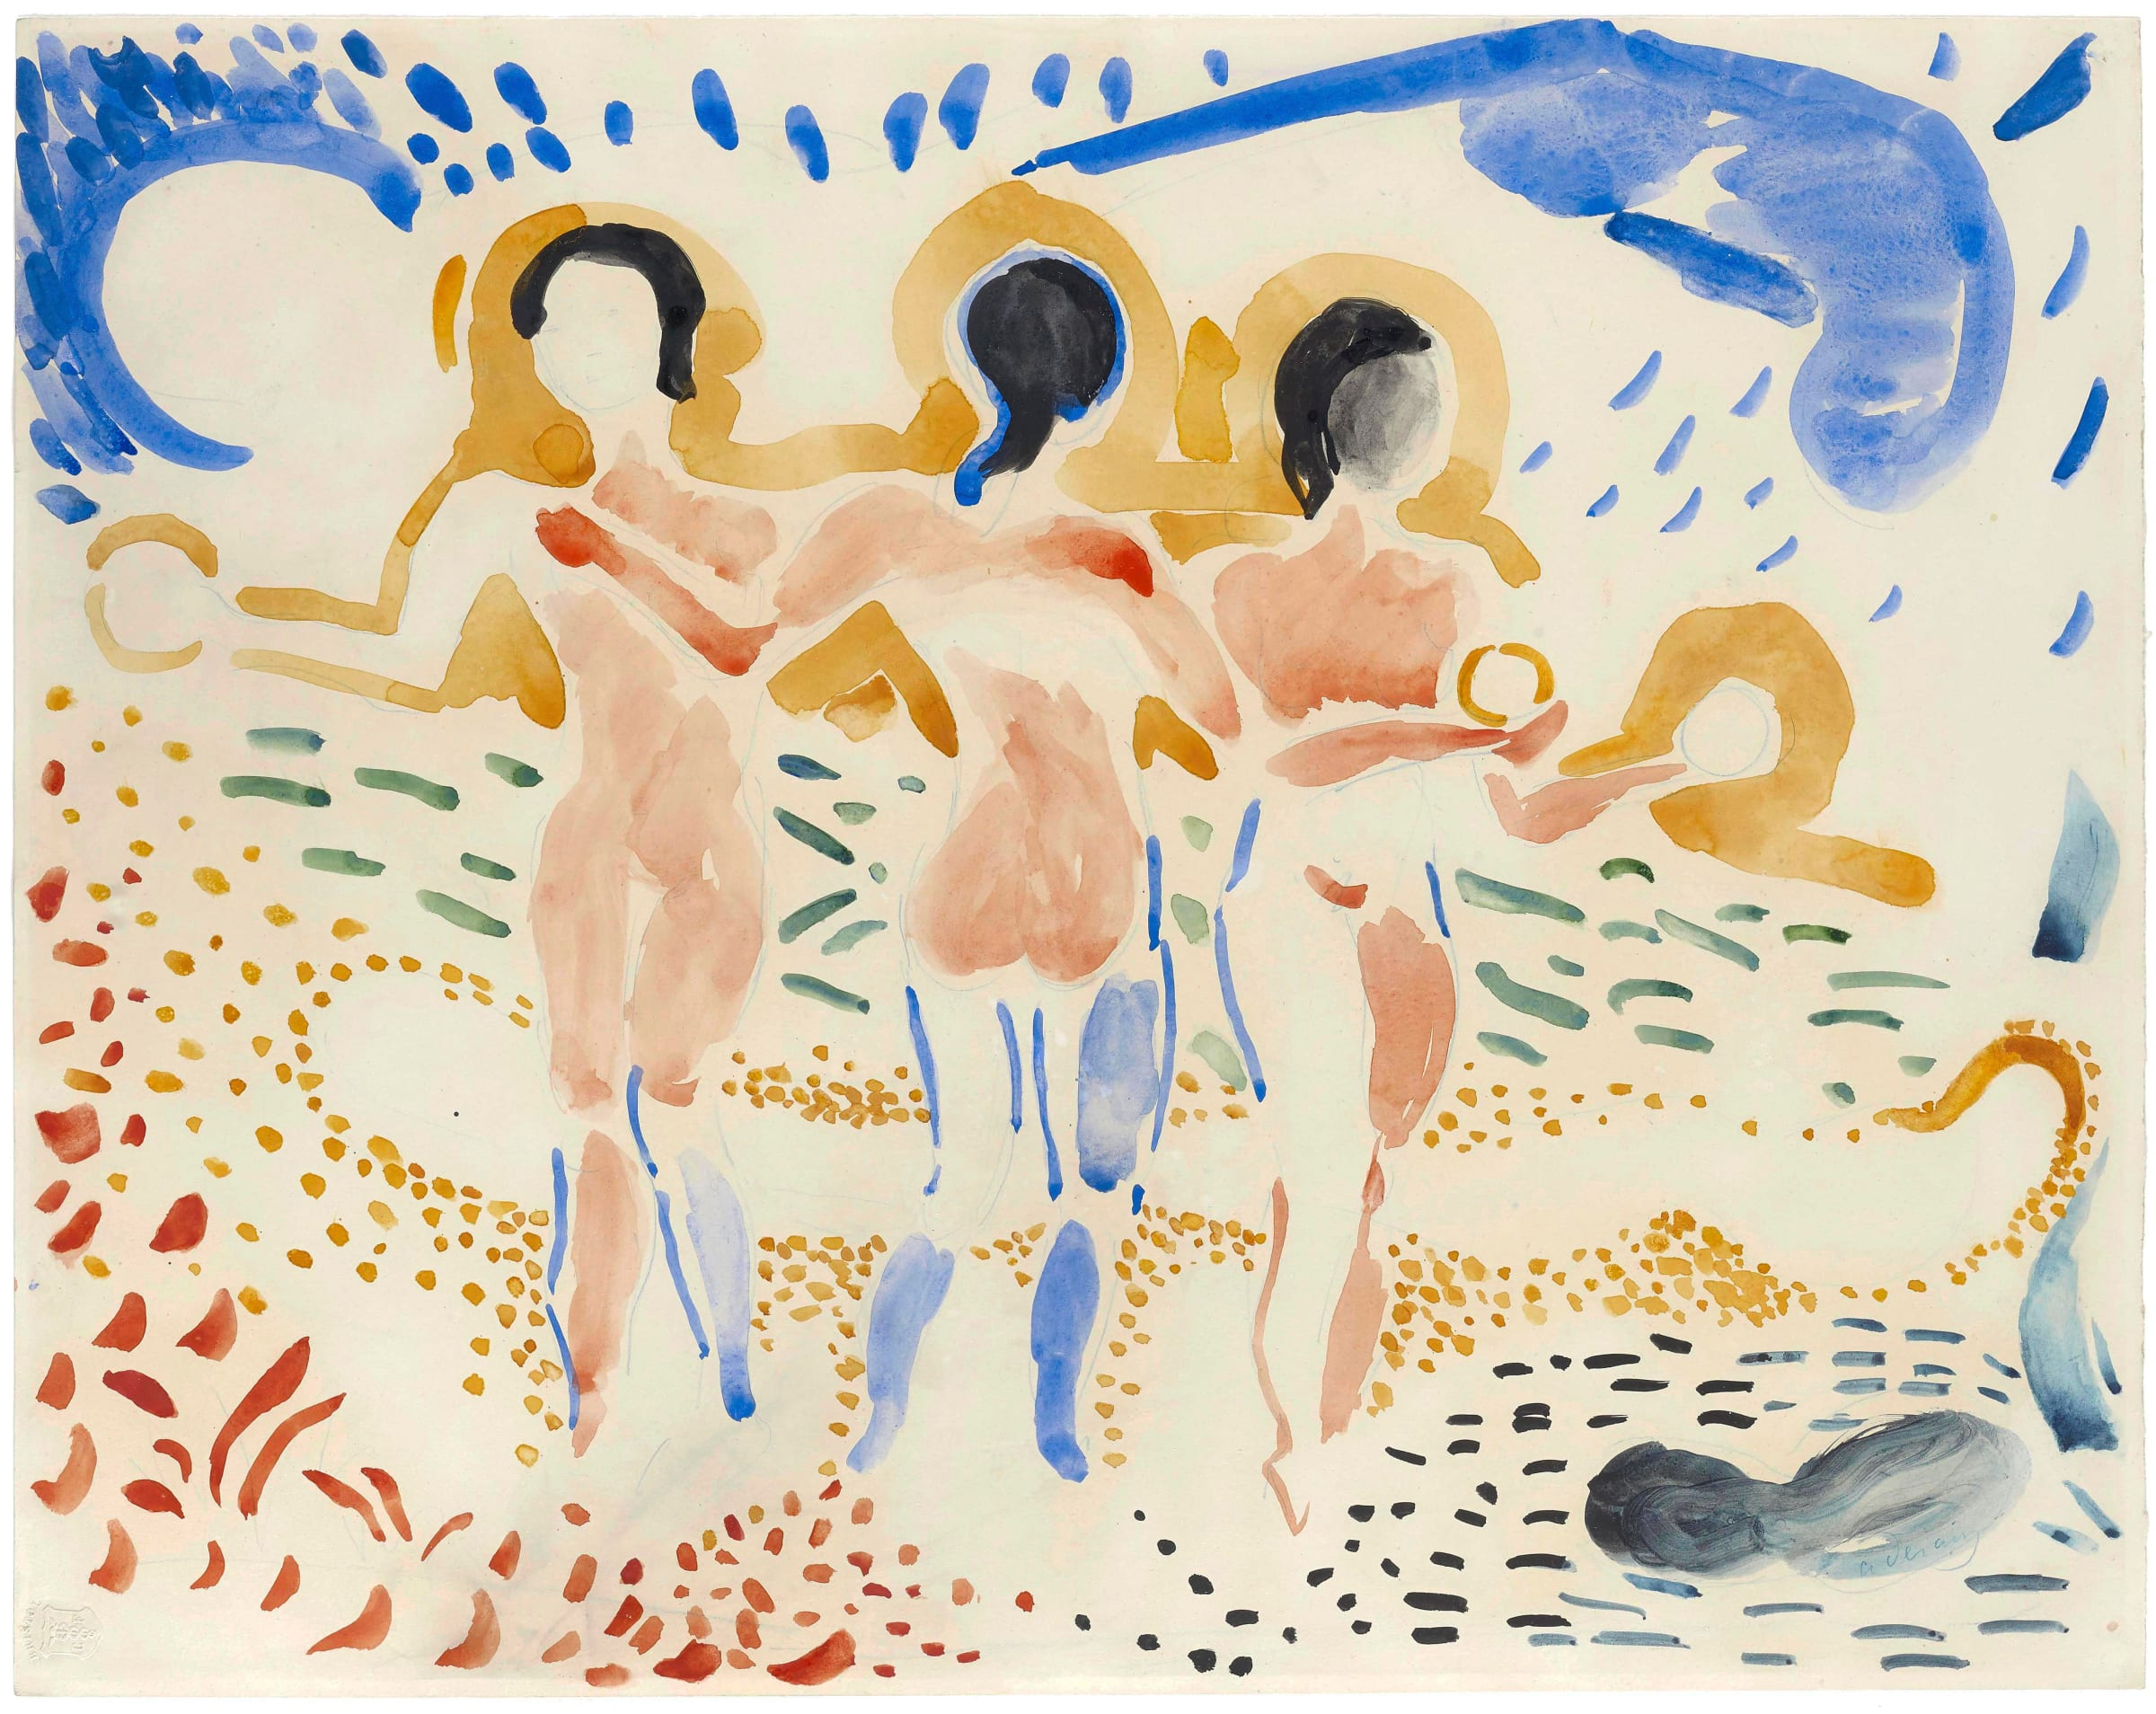 "<span class=""link fancybox-details-link""><a href=""/exhibitions/20/works/artworks_standalone9388/"">View Detail Page</a></span><div class=""signed_and_dated"">Signed lower right a.derain Watermark Bristol lower left</div>